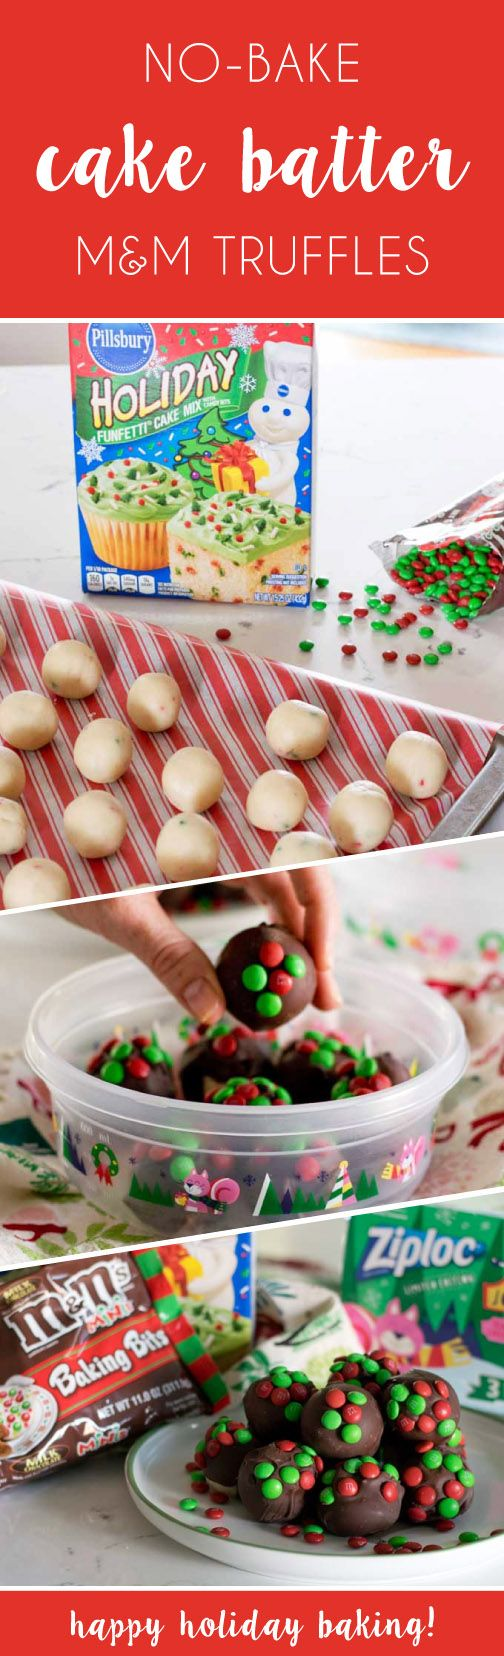 From cookie exchanges to family gatherings, there are so many reasons to head to Target for the supplies to make these No-Bake Cake Batter M&M's Truffles this holiday season. A box of Pillsbury Funfetti Holiday Cake Mix is transformed into chocolate-coated, bite-size truffles and then topped with red and green M&M's Holiday Minis for a festive finish. Wrapped up in a Ziploc Holiday Printed Container, this is one gift idea that is sure to be enjoyed by everyone on your list.